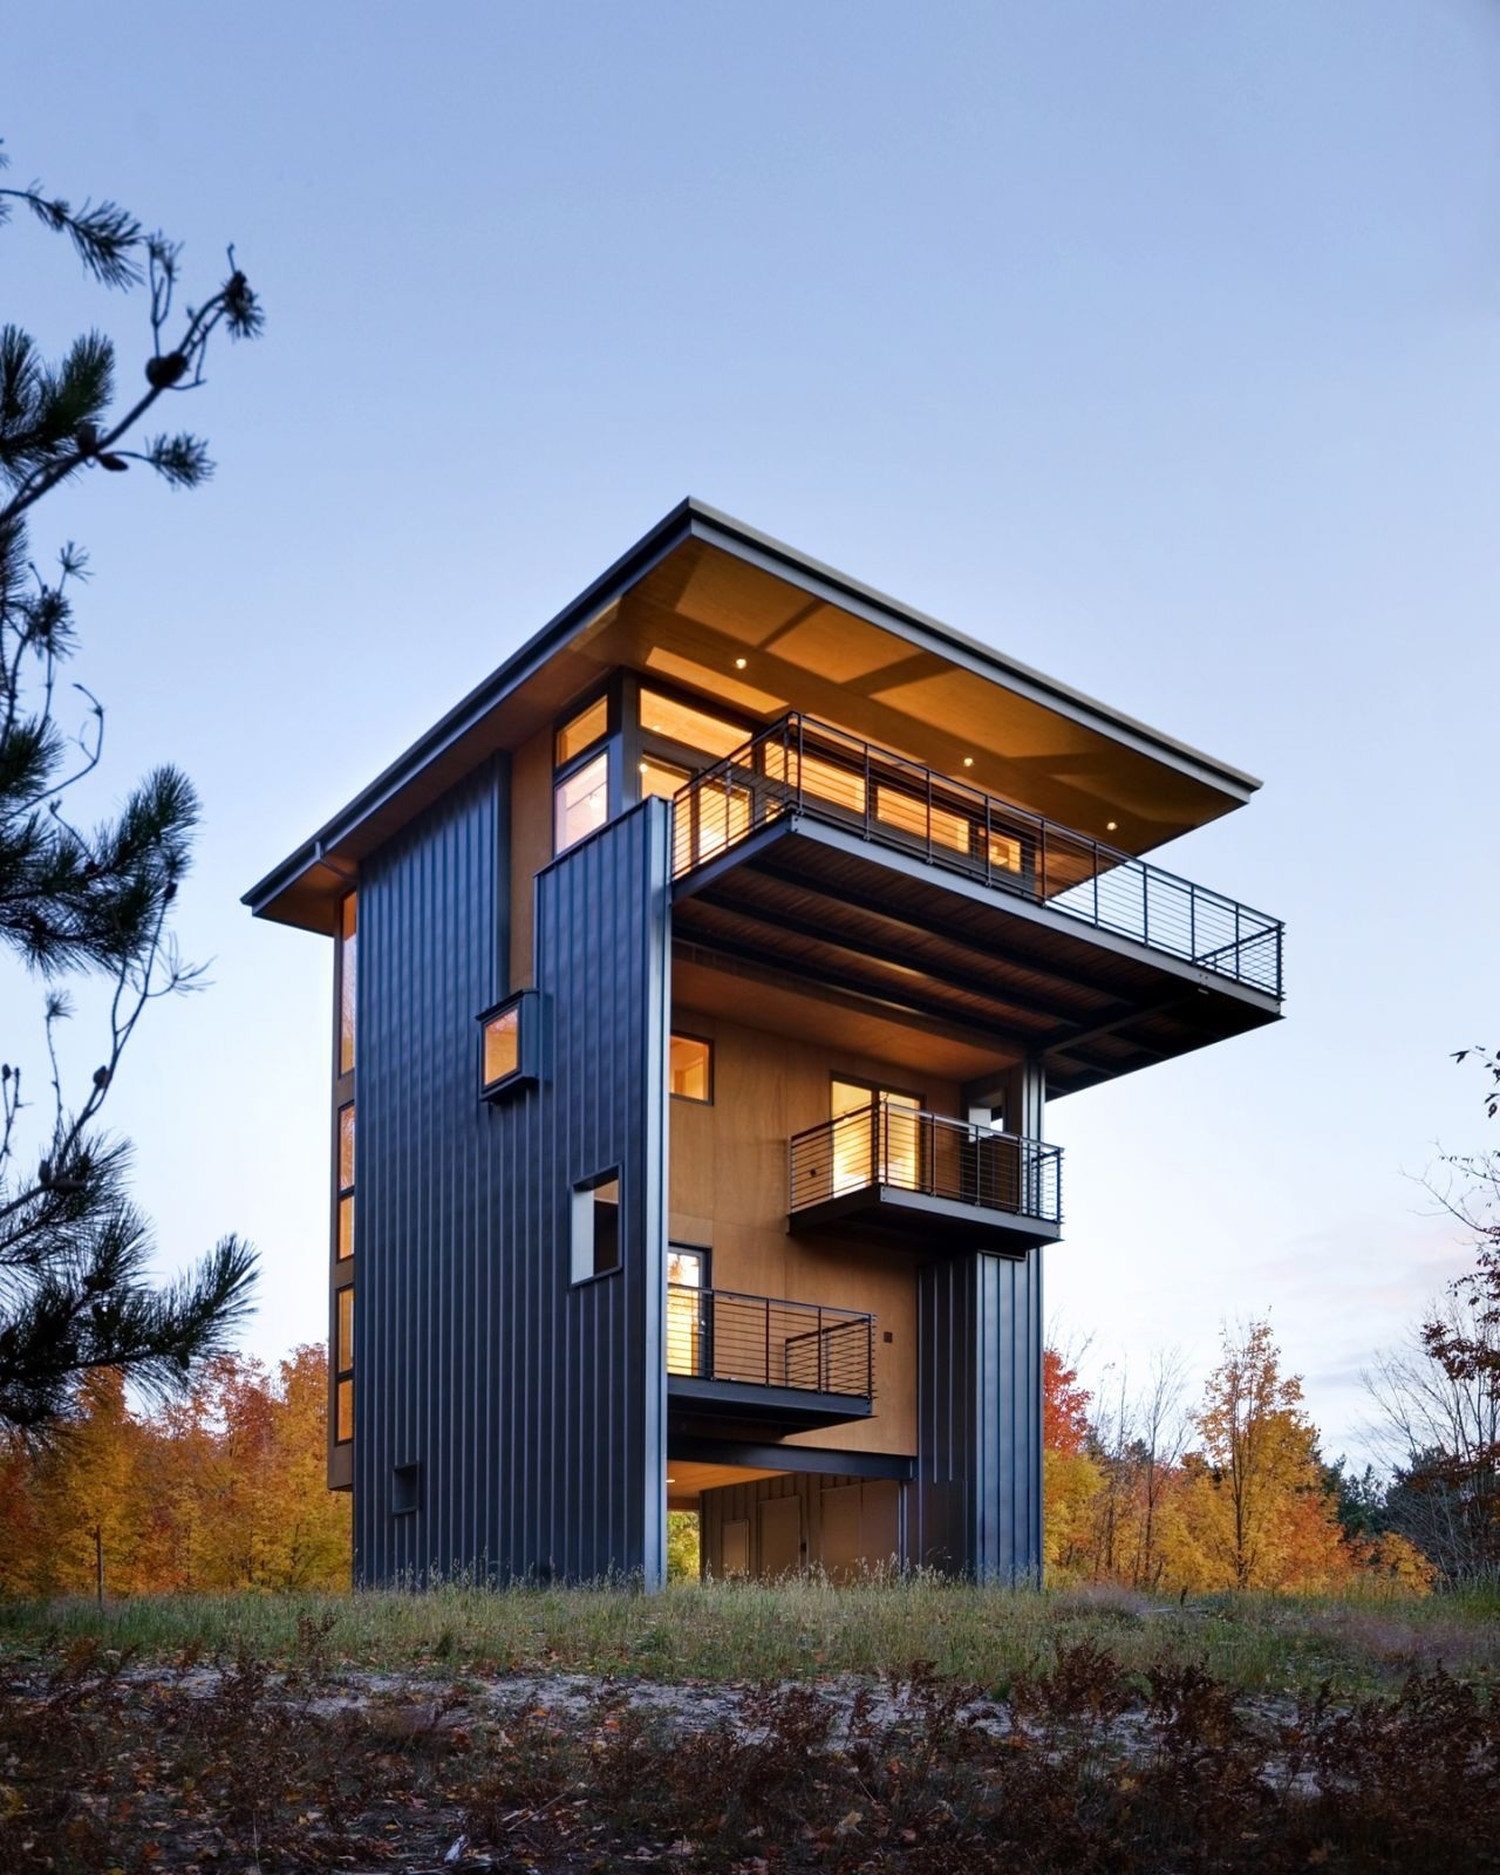 Glen Lake Tower By Balance Associates Architects